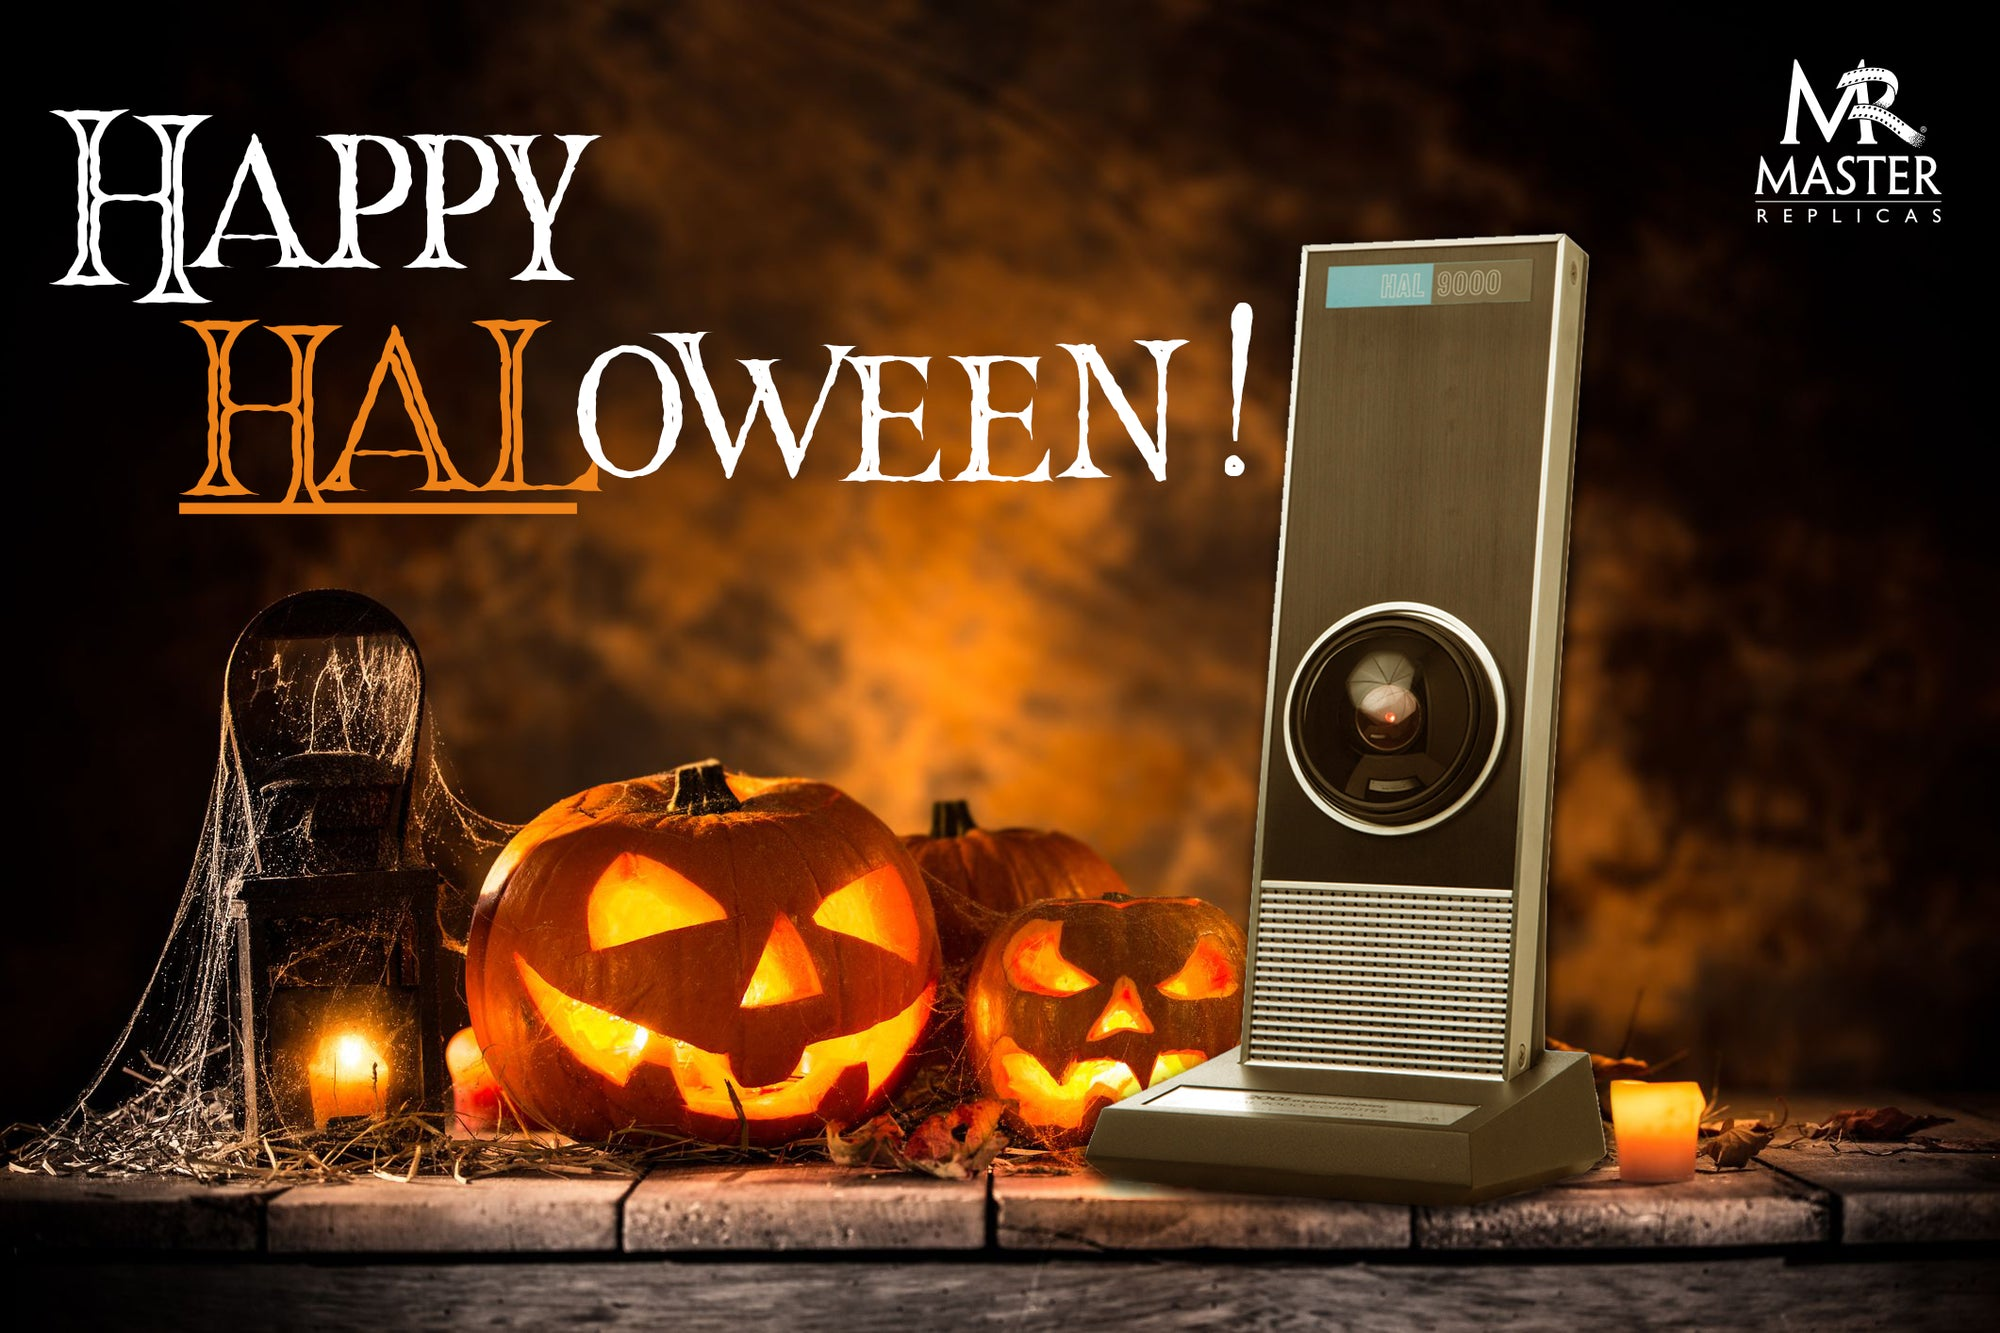 HALoween Spooktacular Sale! Save 10% on most in-stock products